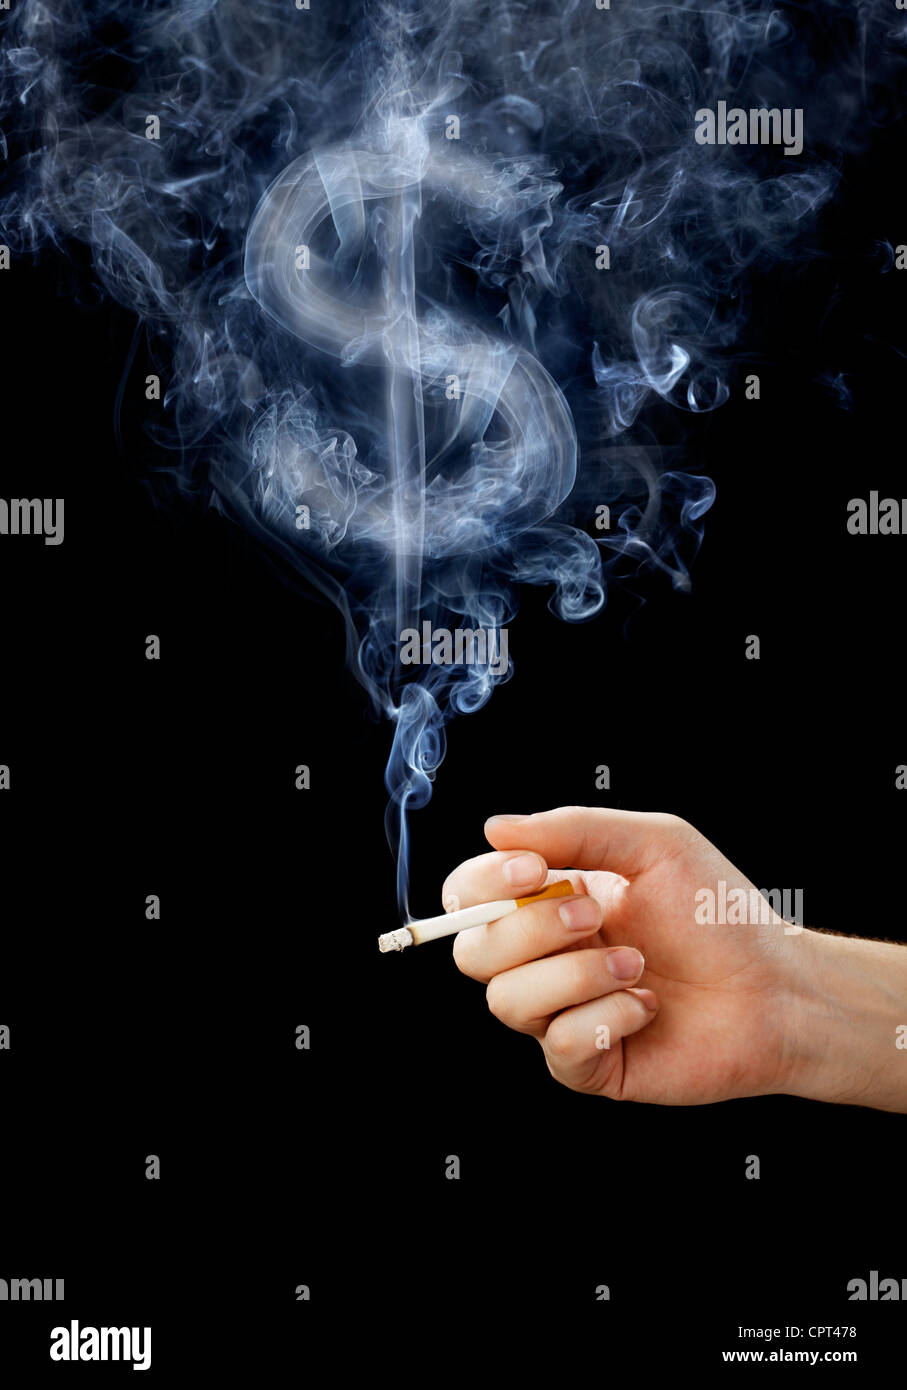 Cigarette with smoke shaped like a dollar sign. - Stock Image